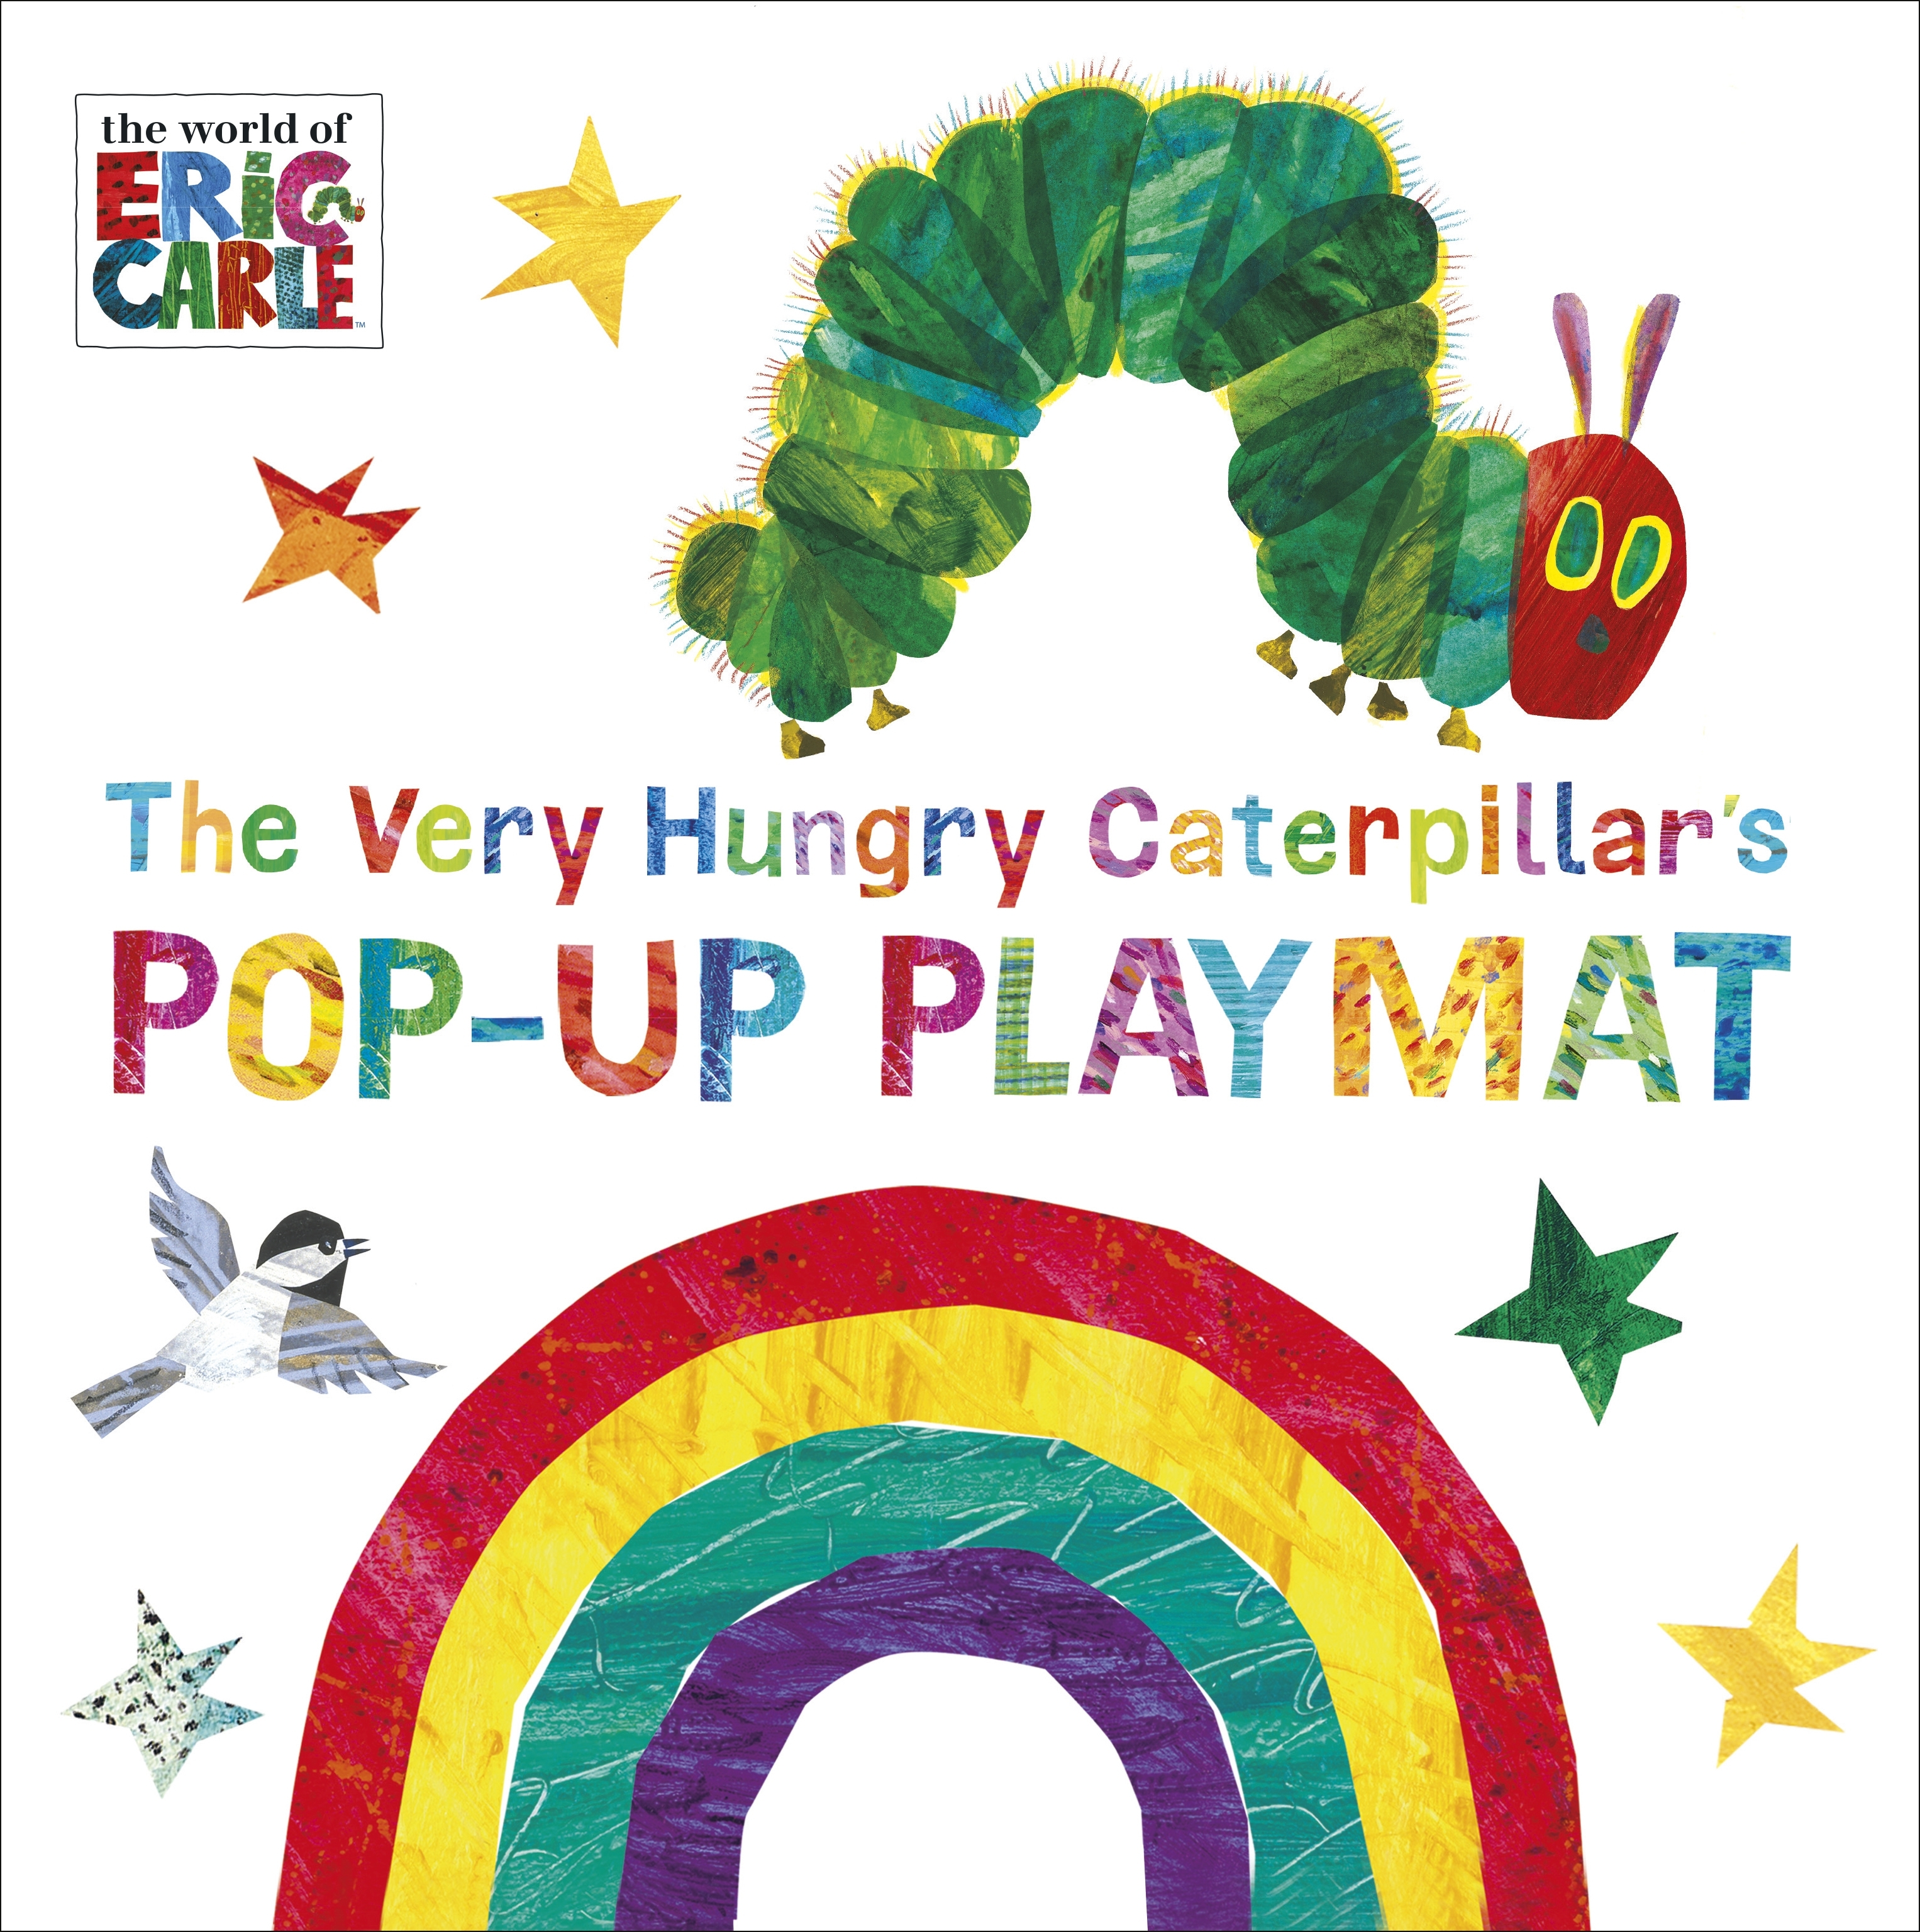 The Very Hungry Caterpillar S Pop Up Playmat By Eric Carle